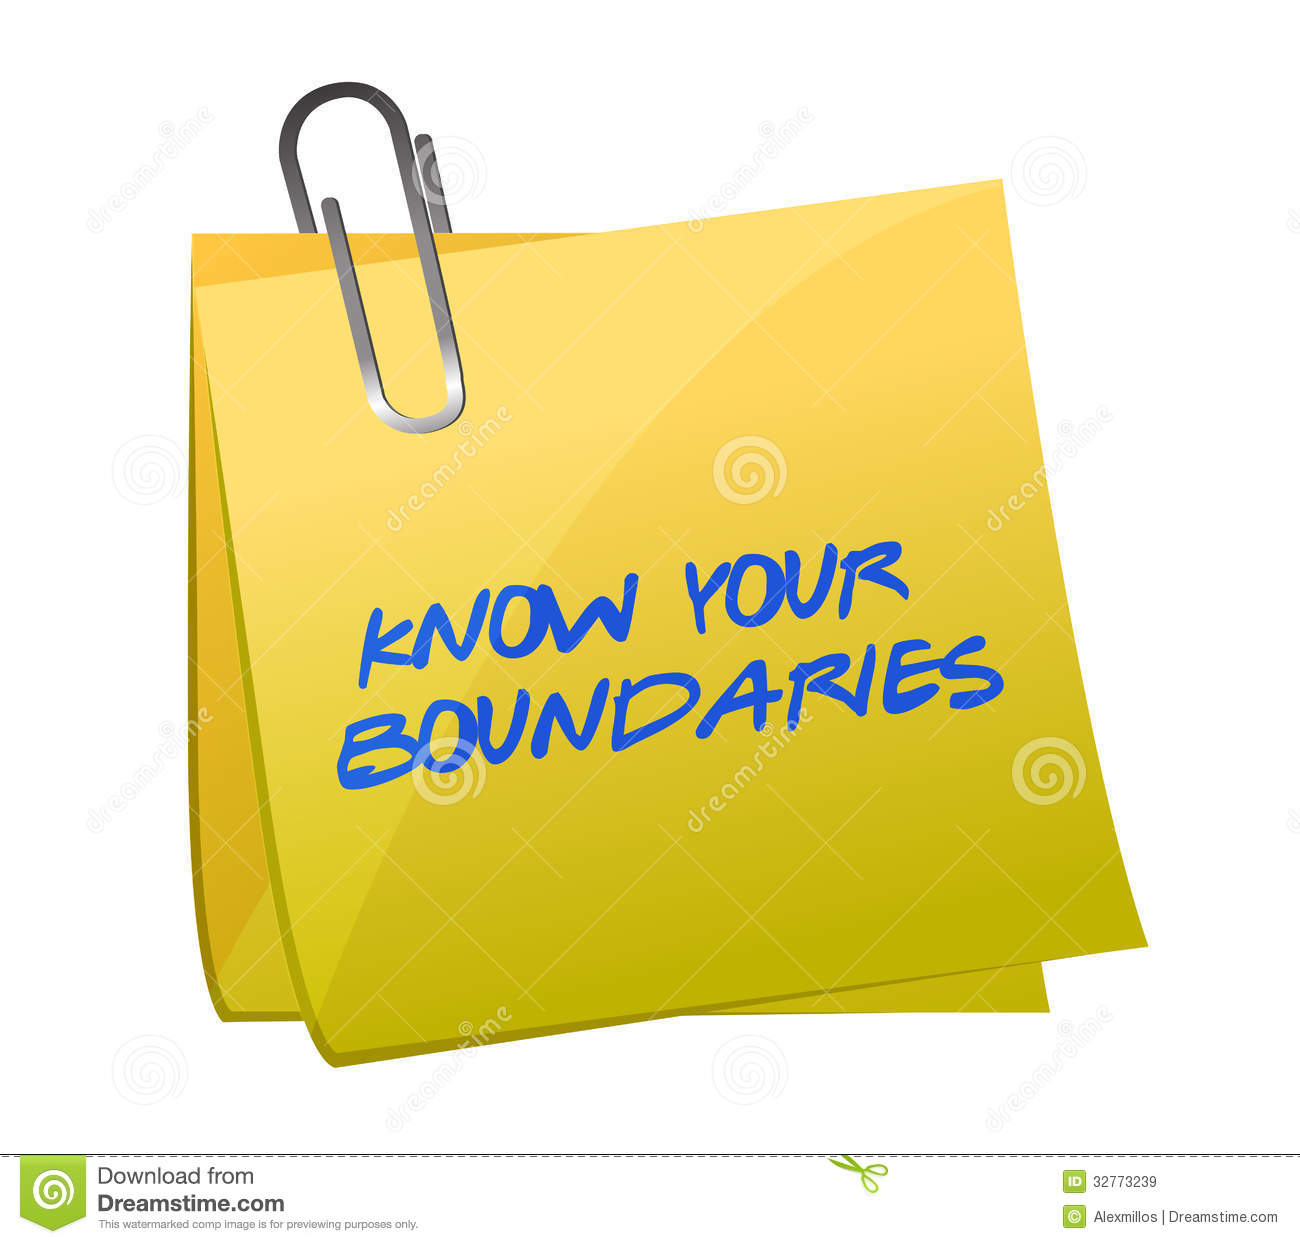 Know Your Boundaries Worksheet